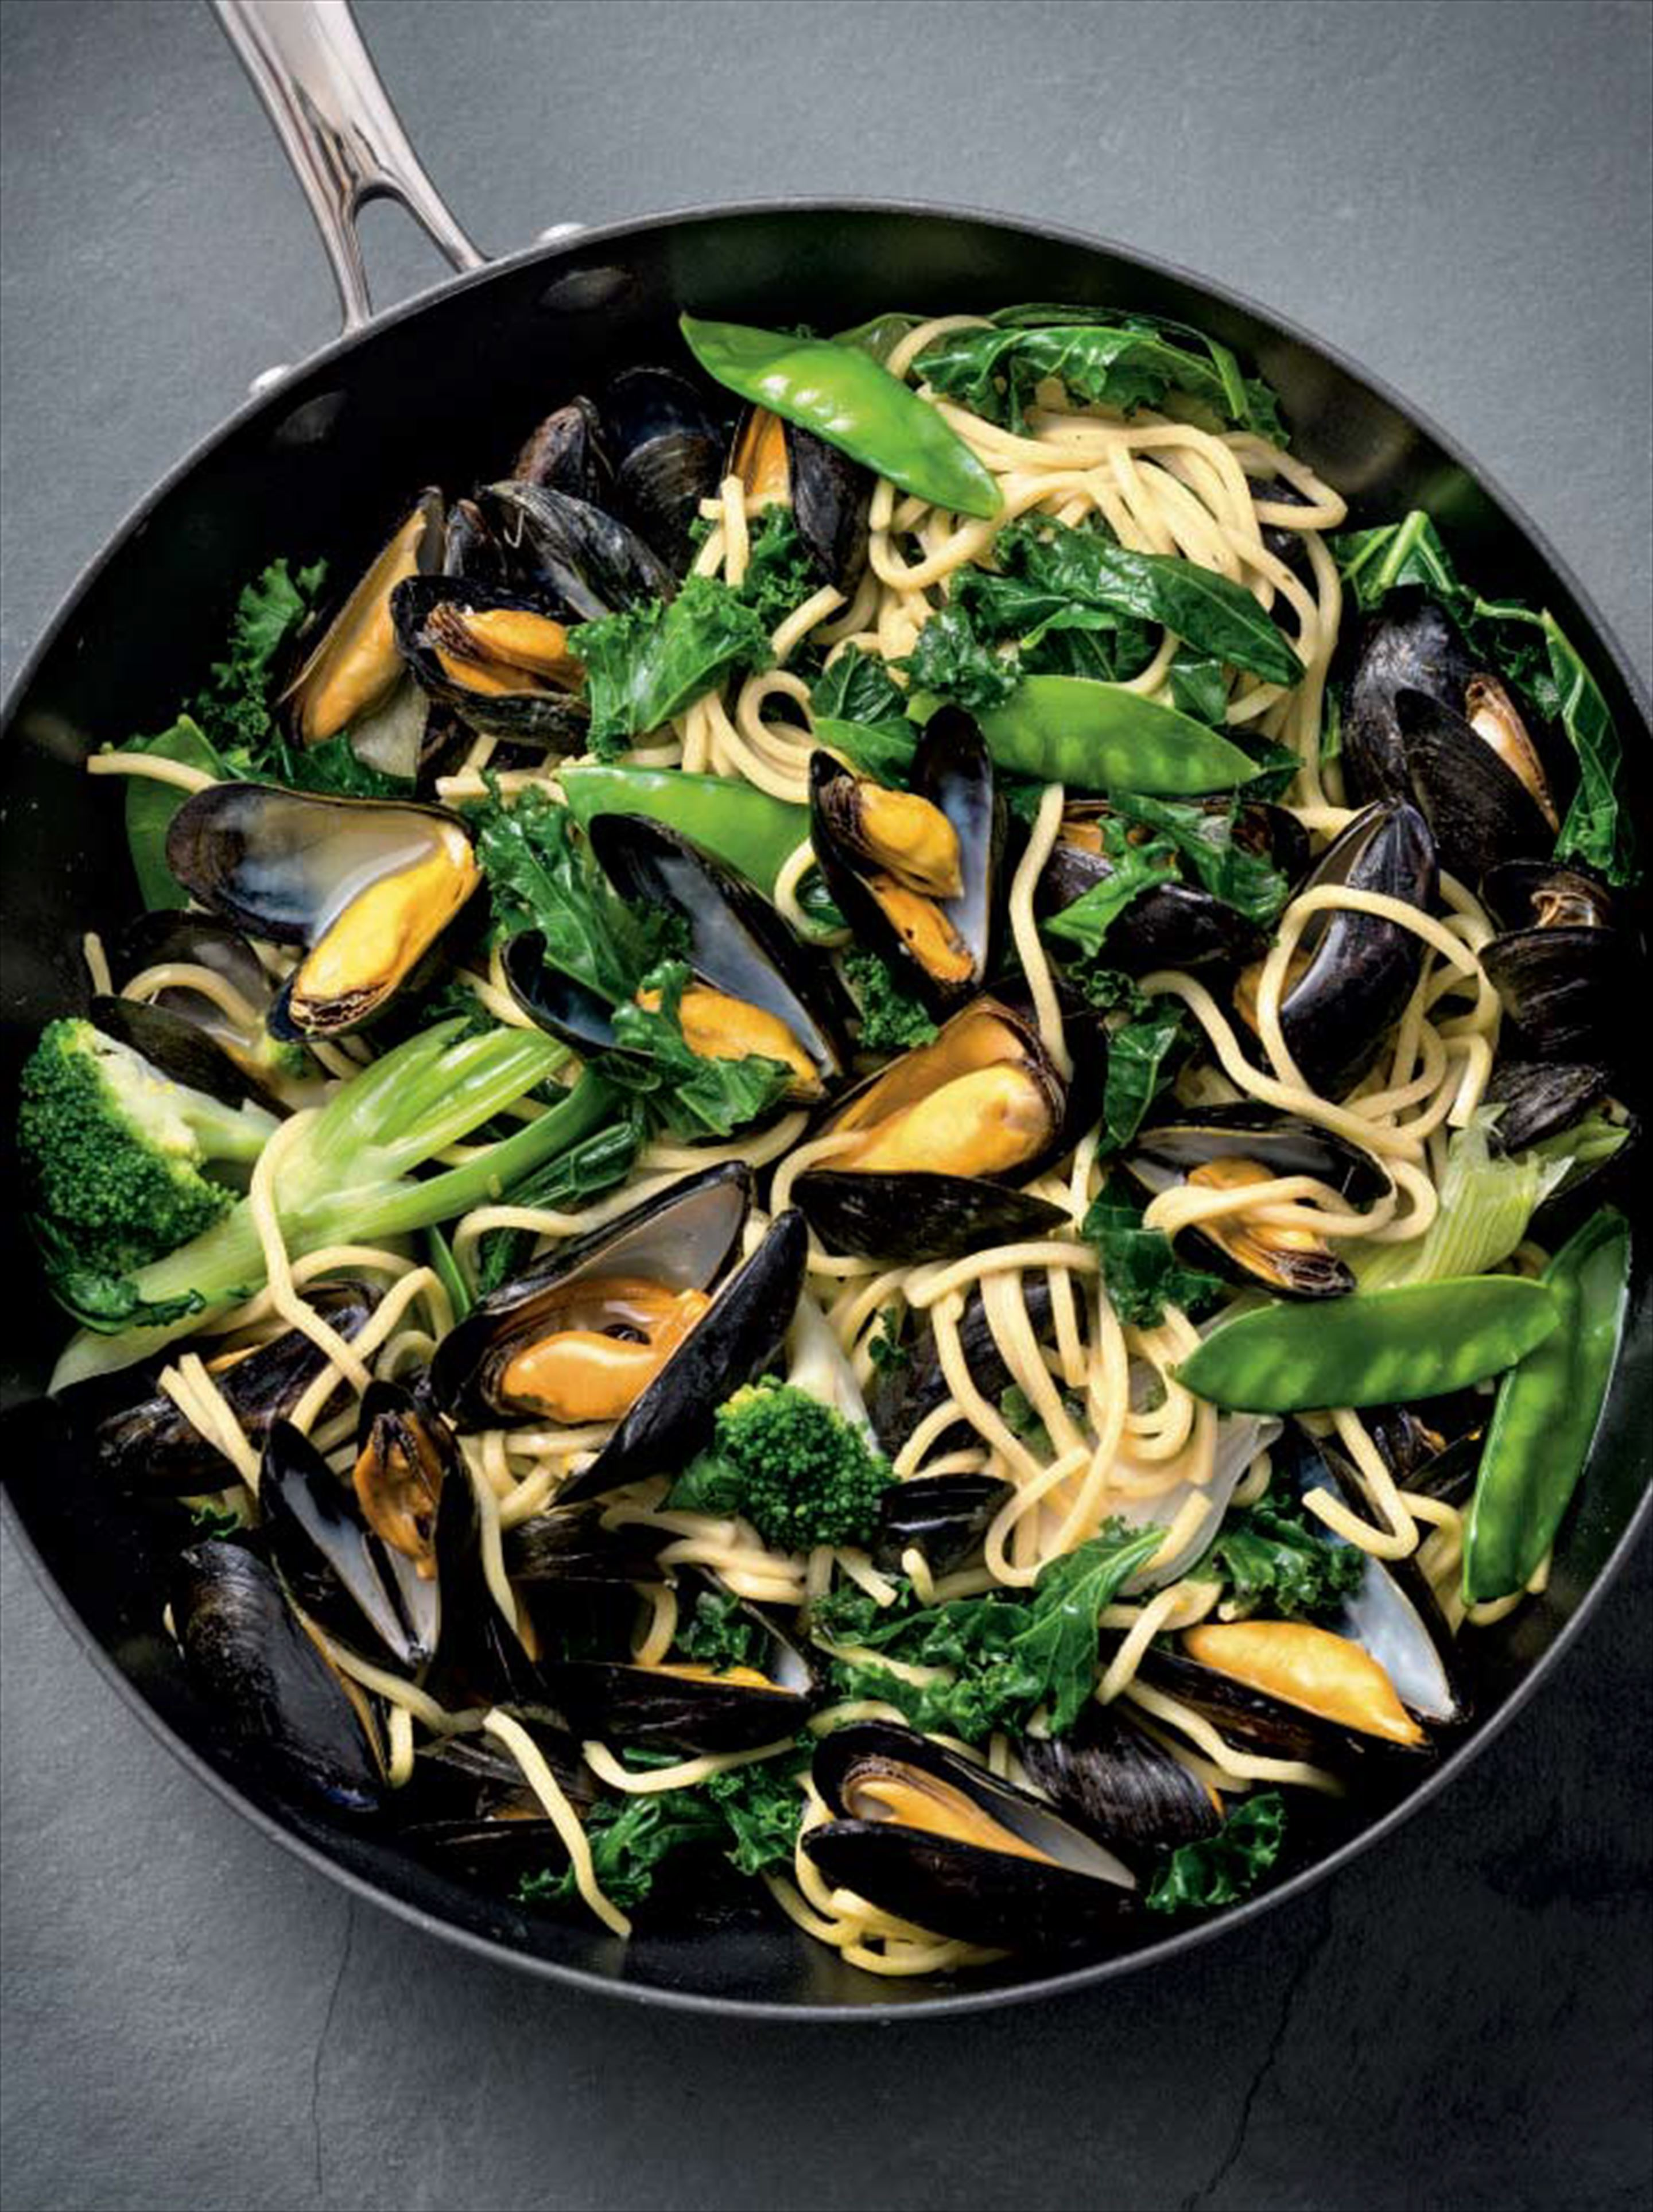 Mussels with lemon butter, greens & noodles